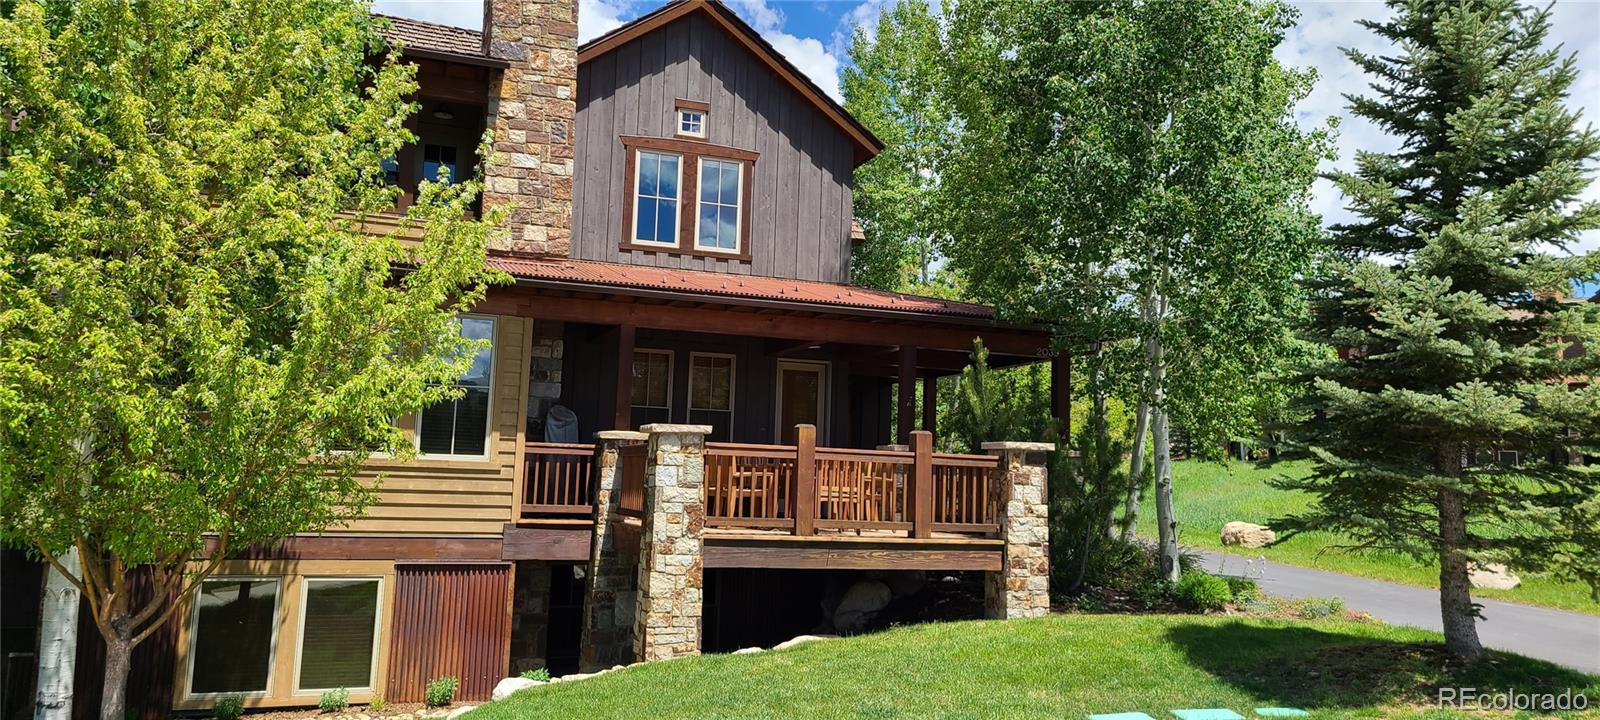 2039 Indian Summer Drive, Steamboat Springs, CO 80487 - #: 1930878